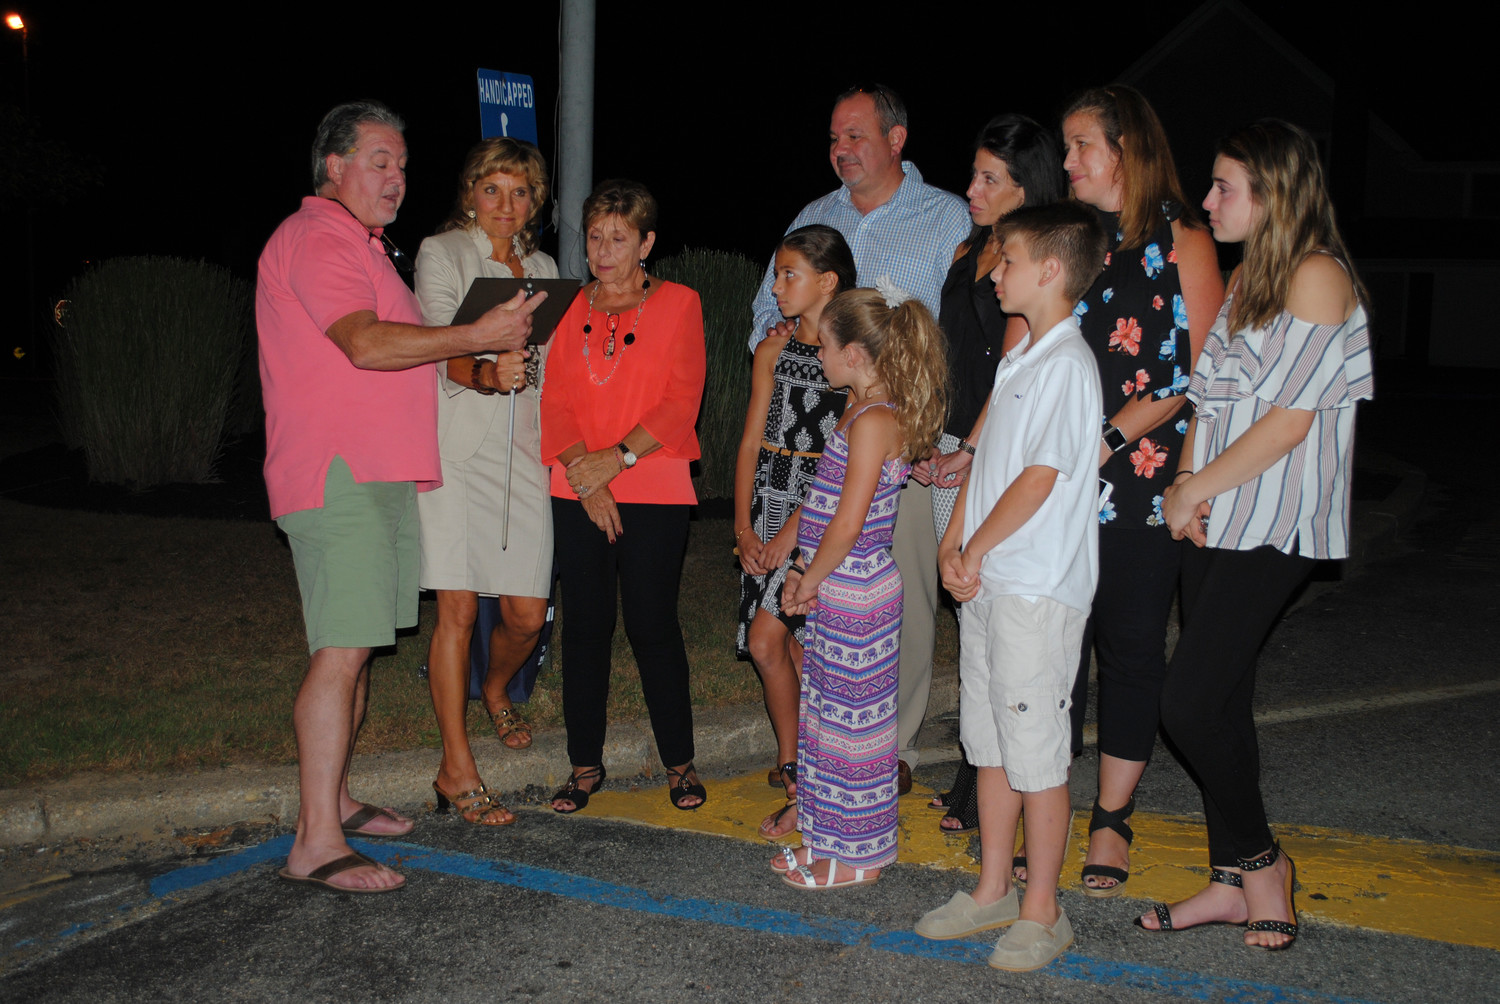 Board trustee David Huggins, left, and Gail Nedbor-Gross, read and presented the plaque for Frank Bouza to his widow, Elizabeth; son and 